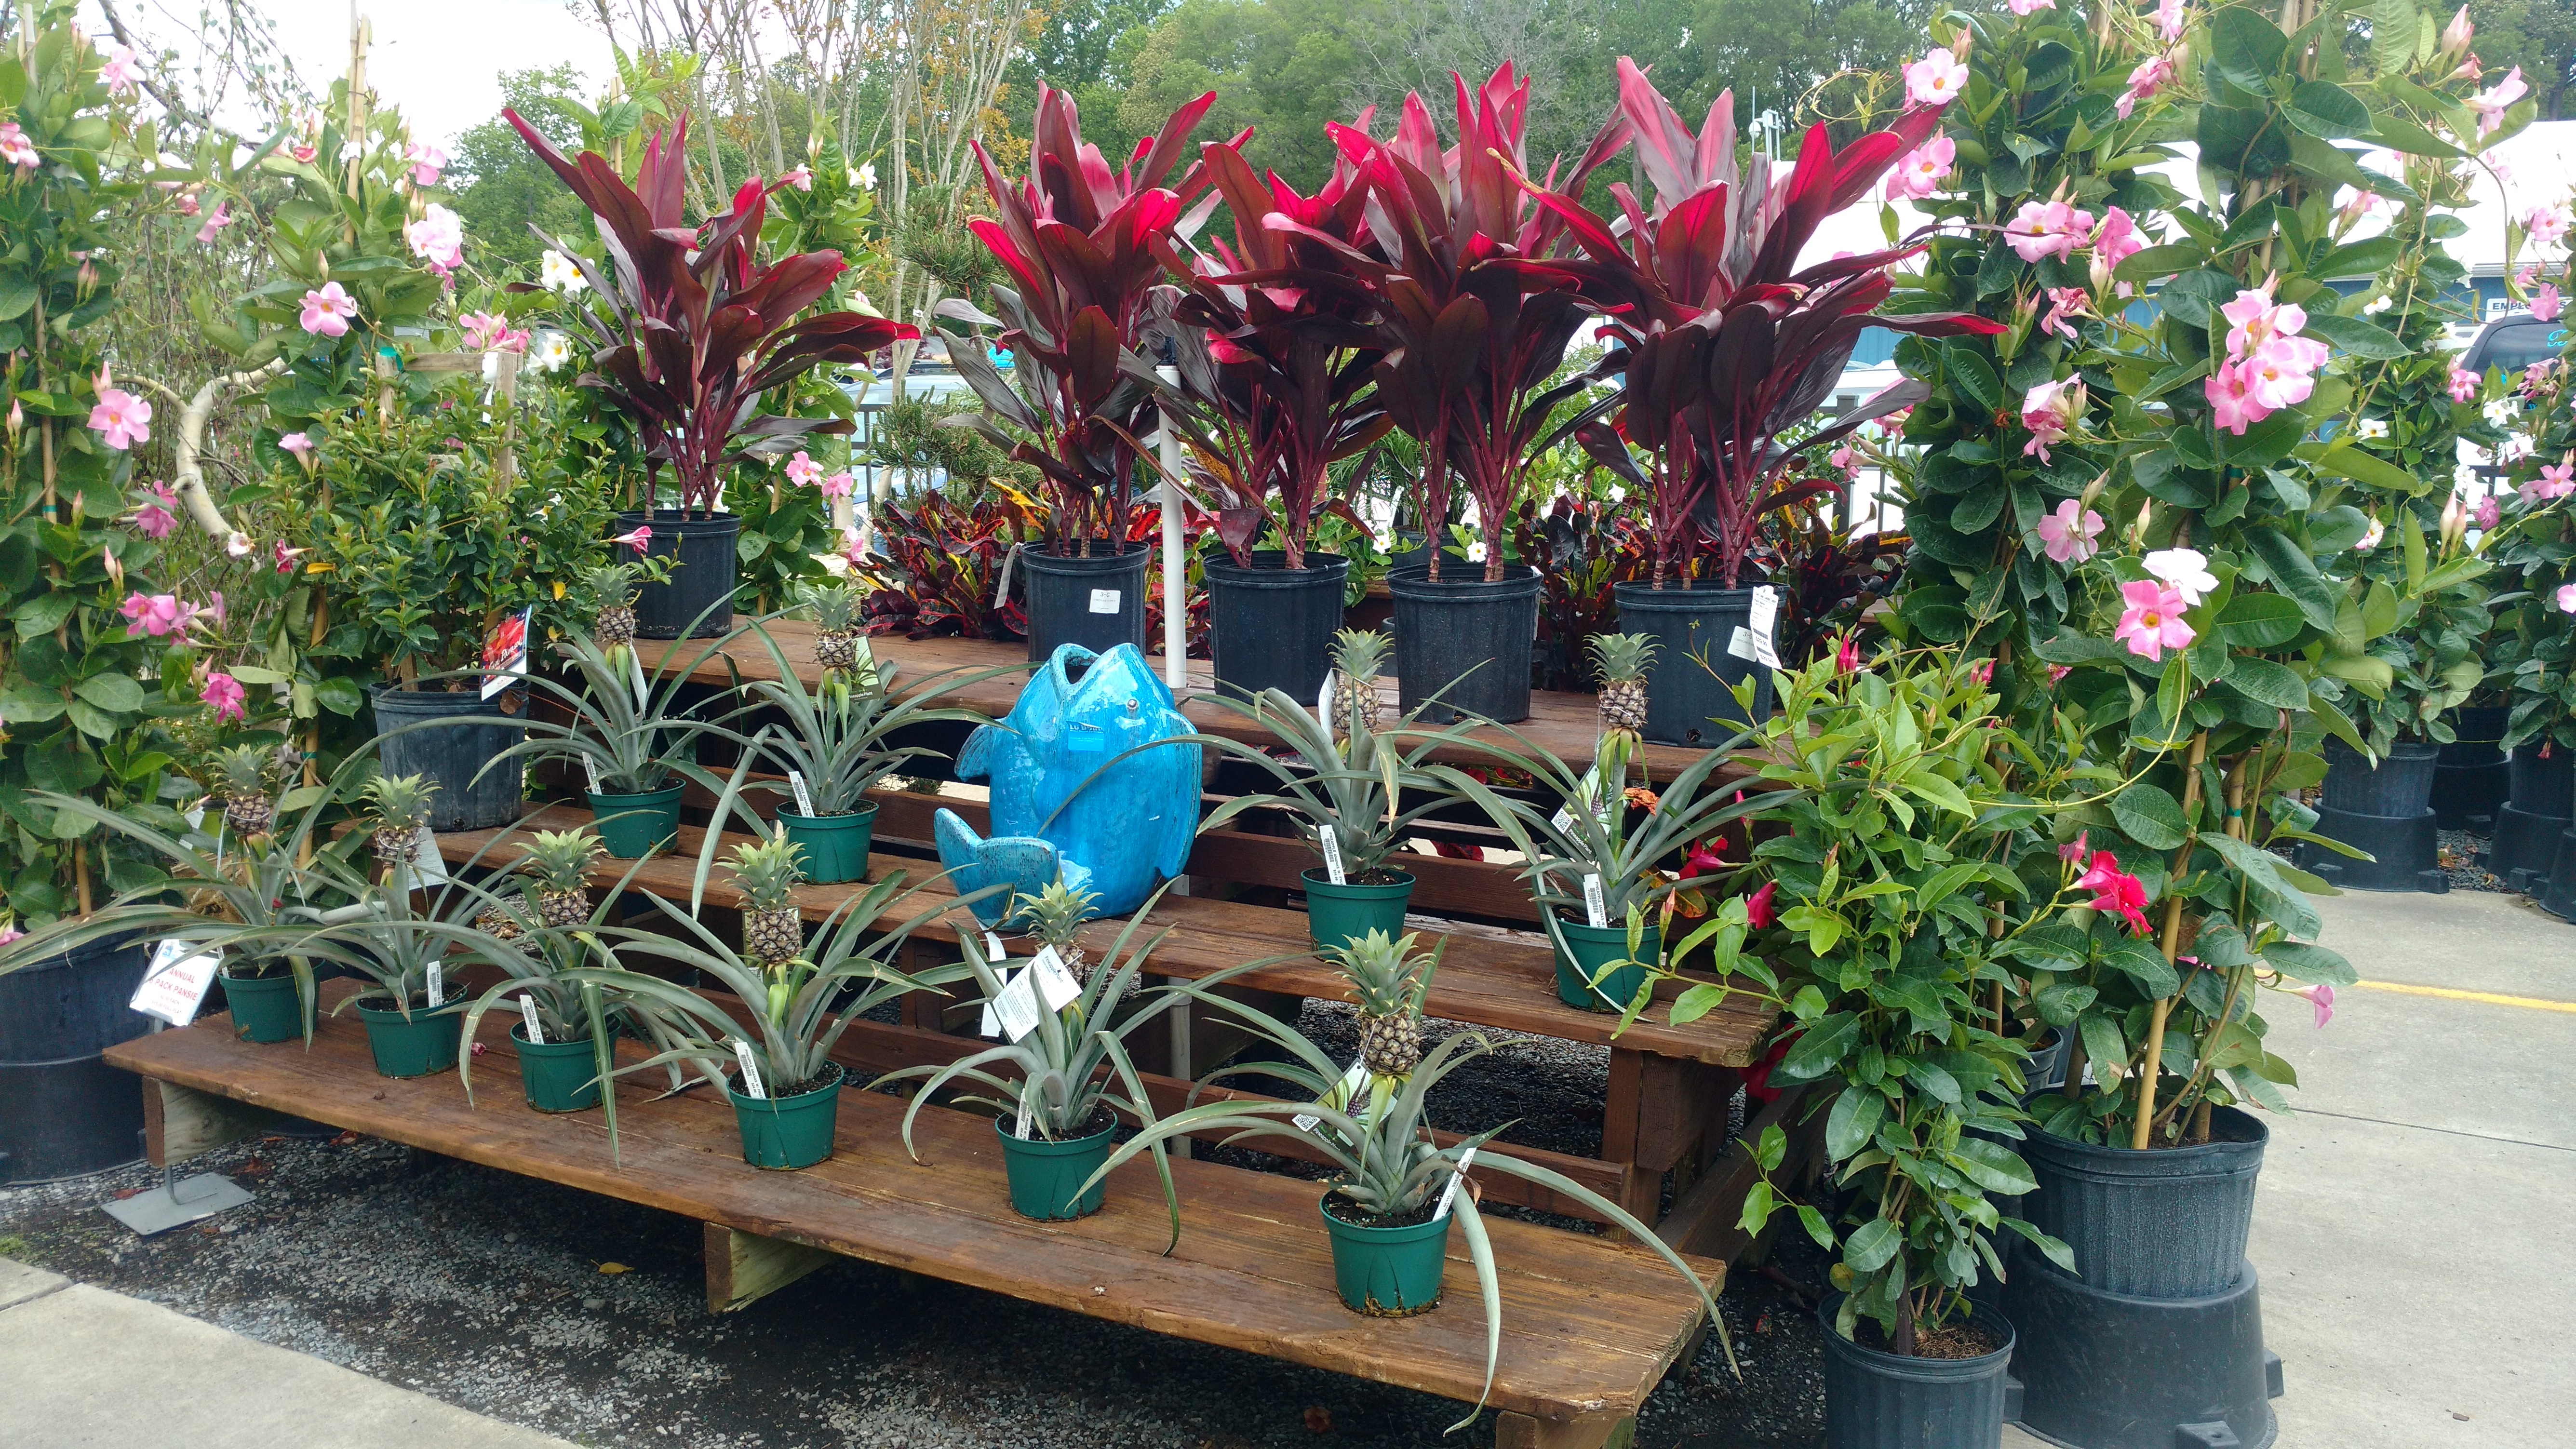 tropicals_pineapples_2017 Tropical Day! - East Coast Garden Center